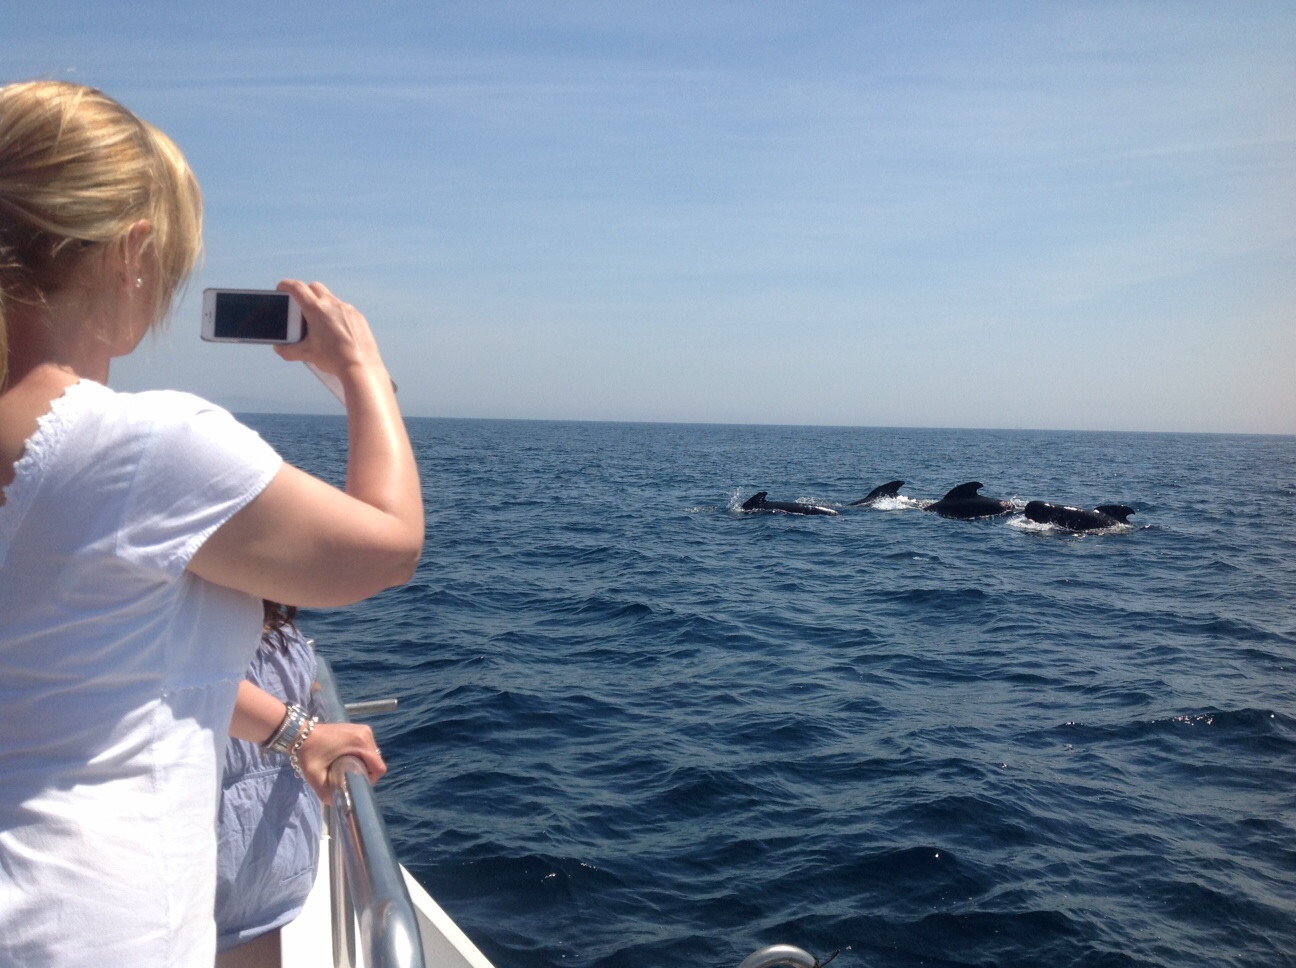 Whale watching trips make for a fascinating day out. ©Andalucia.com